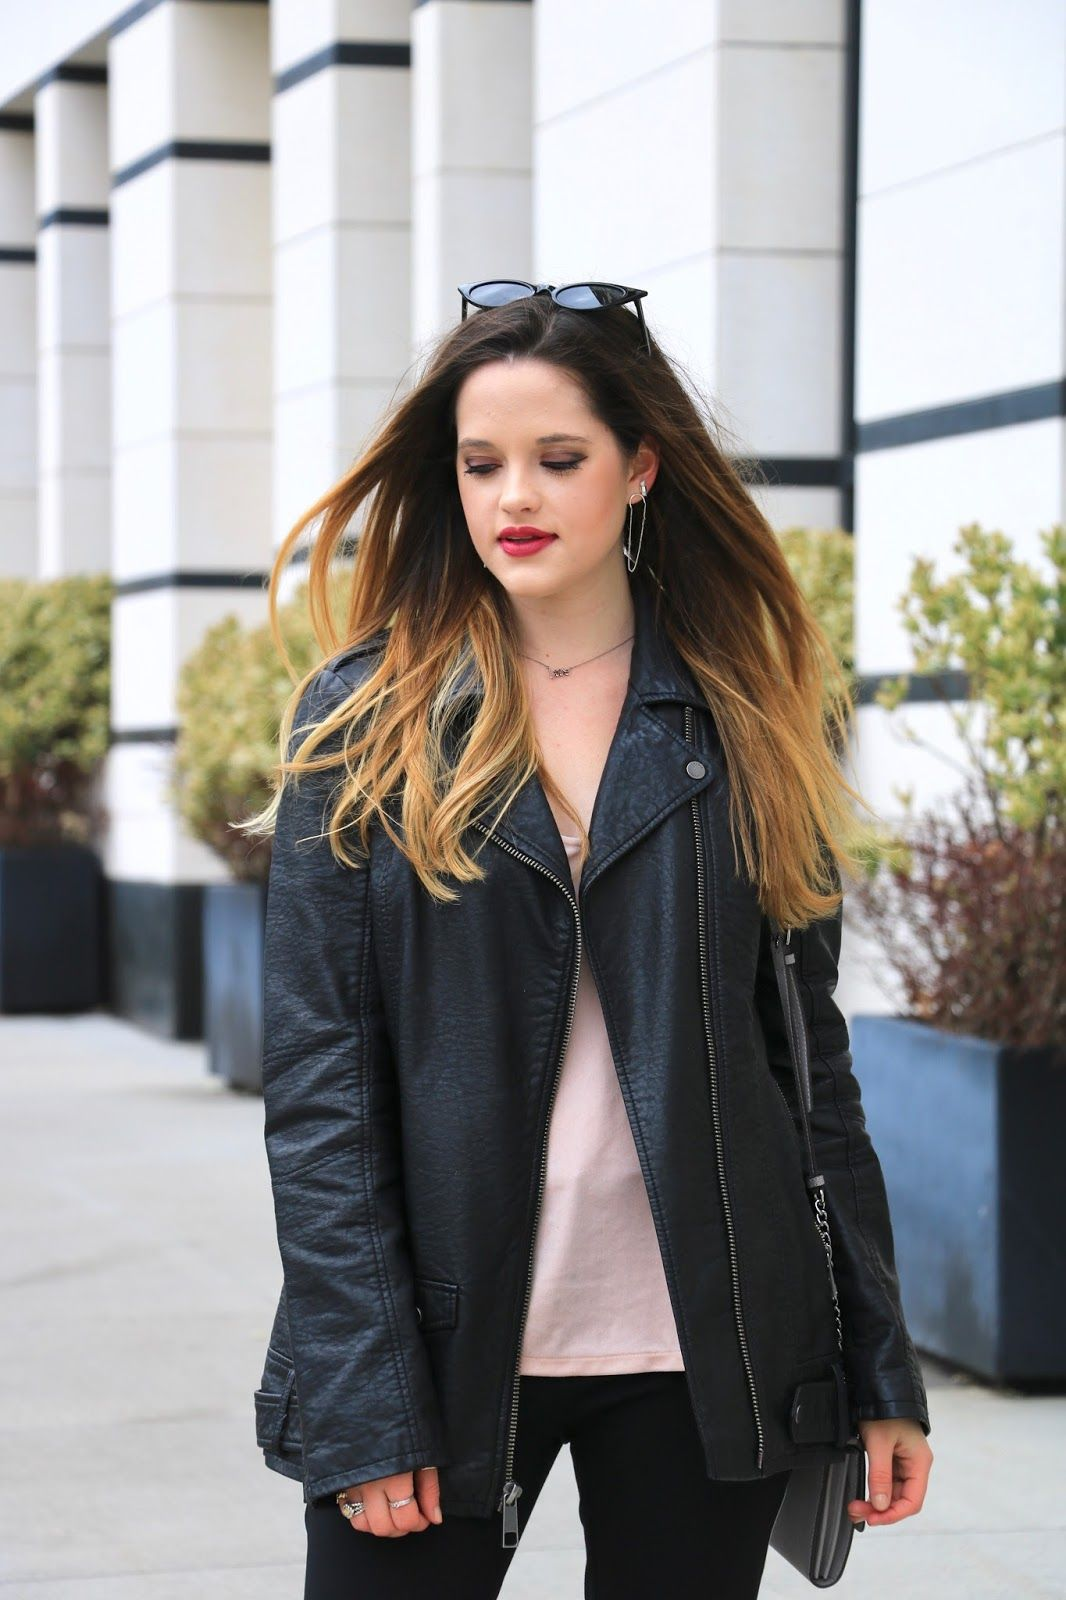 How to wear an oversized leather jacket.